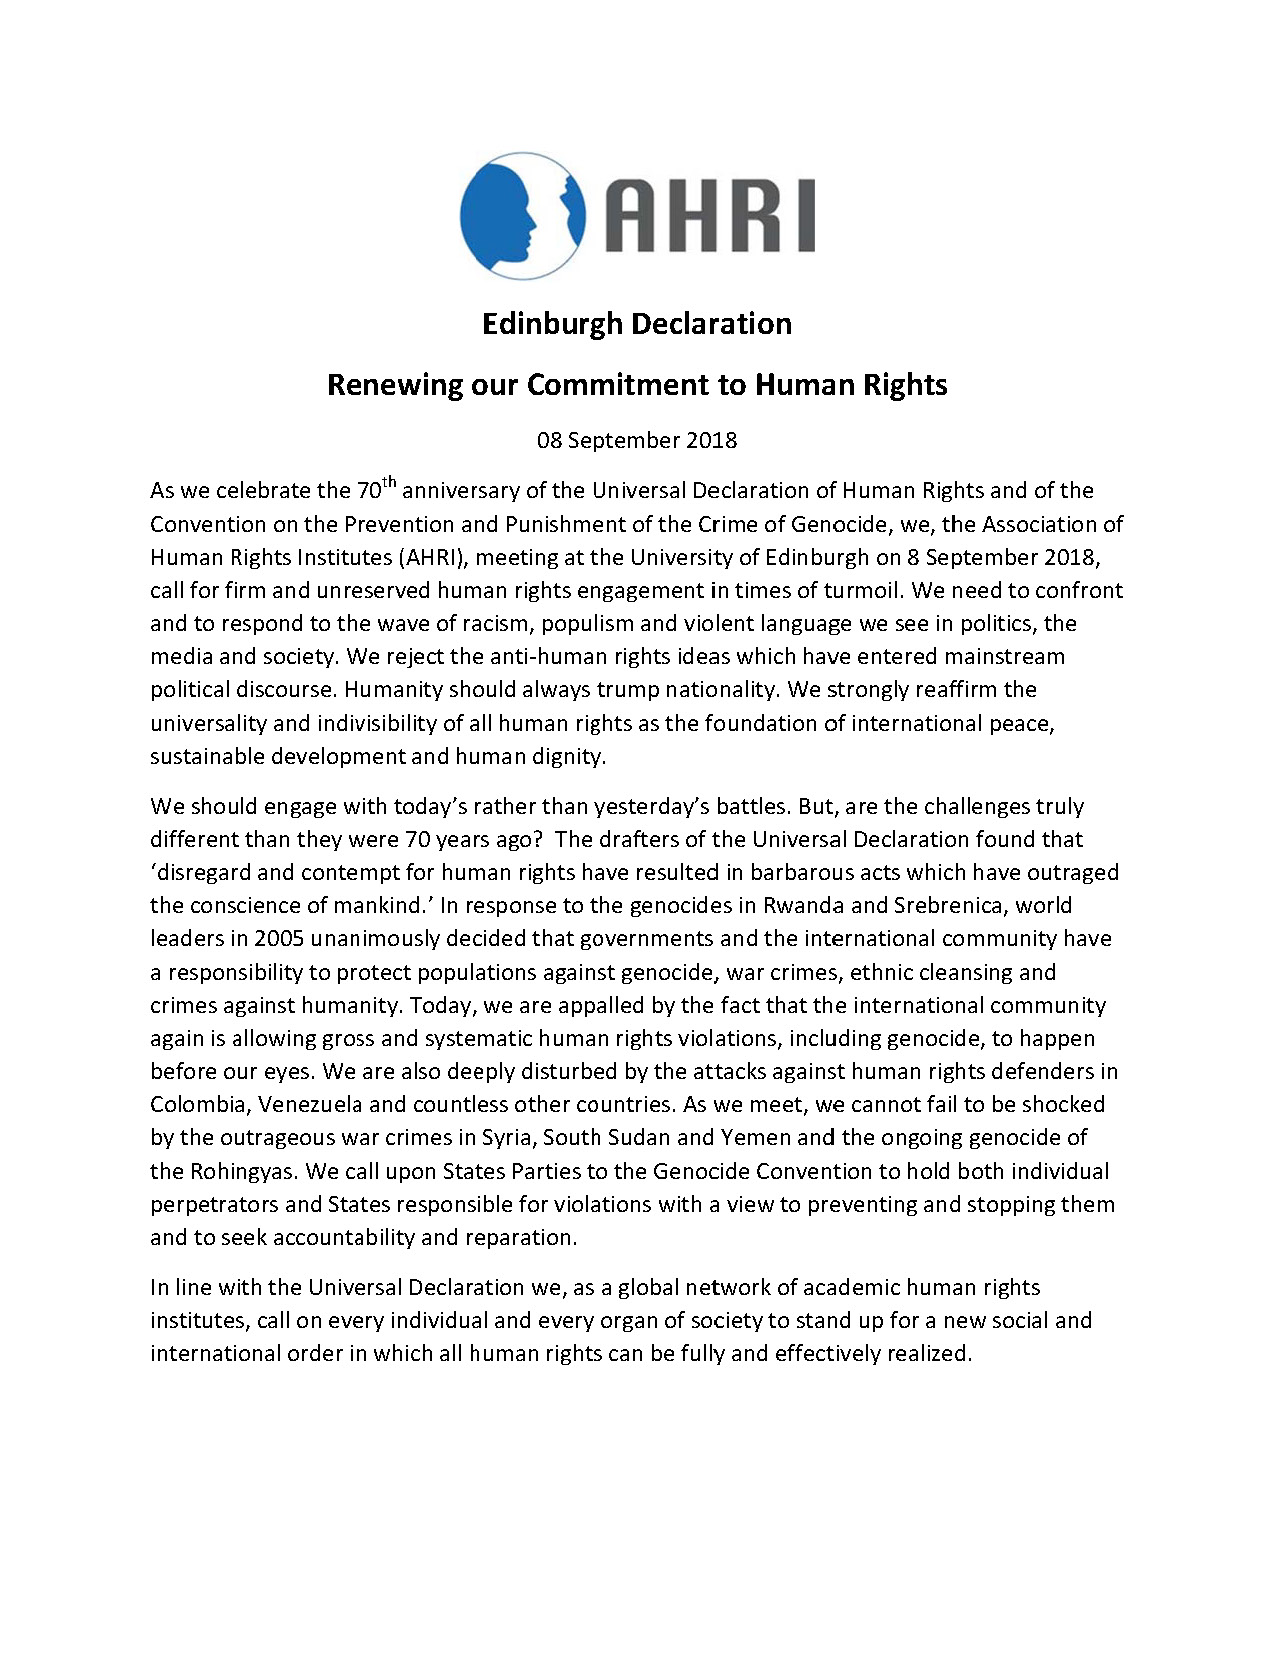 Edinburgh Declaration during the Association of Human Rights Institutes (AHRI) 2018 Conference